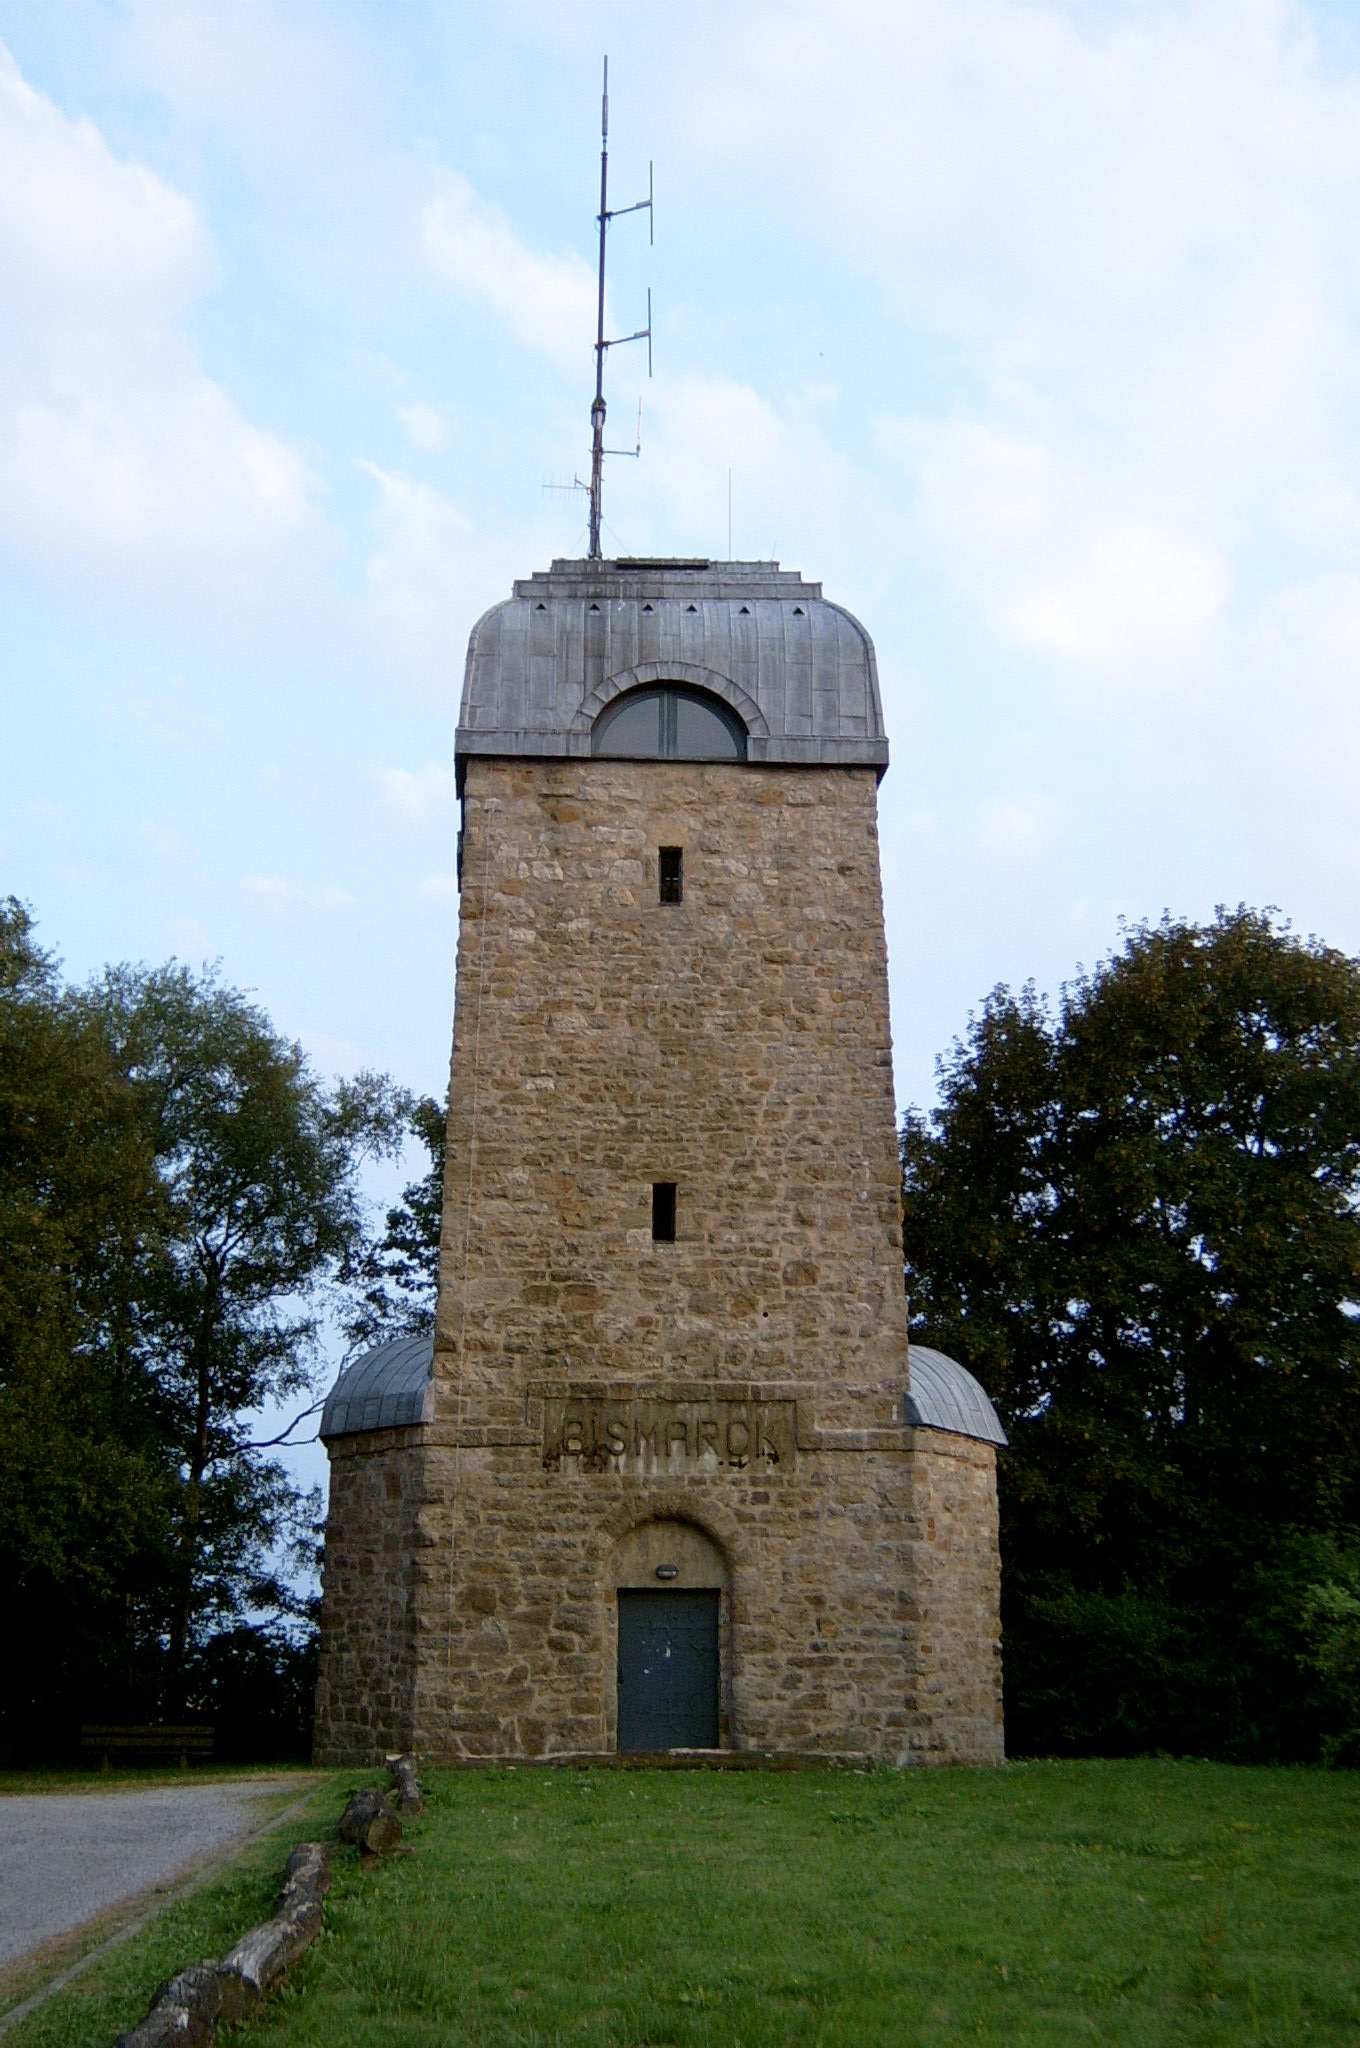 https://upload.wikimedia.org/wikipedia/commons/b/b1/Bismarckturm_%28M%C3%B6hnesee-Delecke%29.jpg